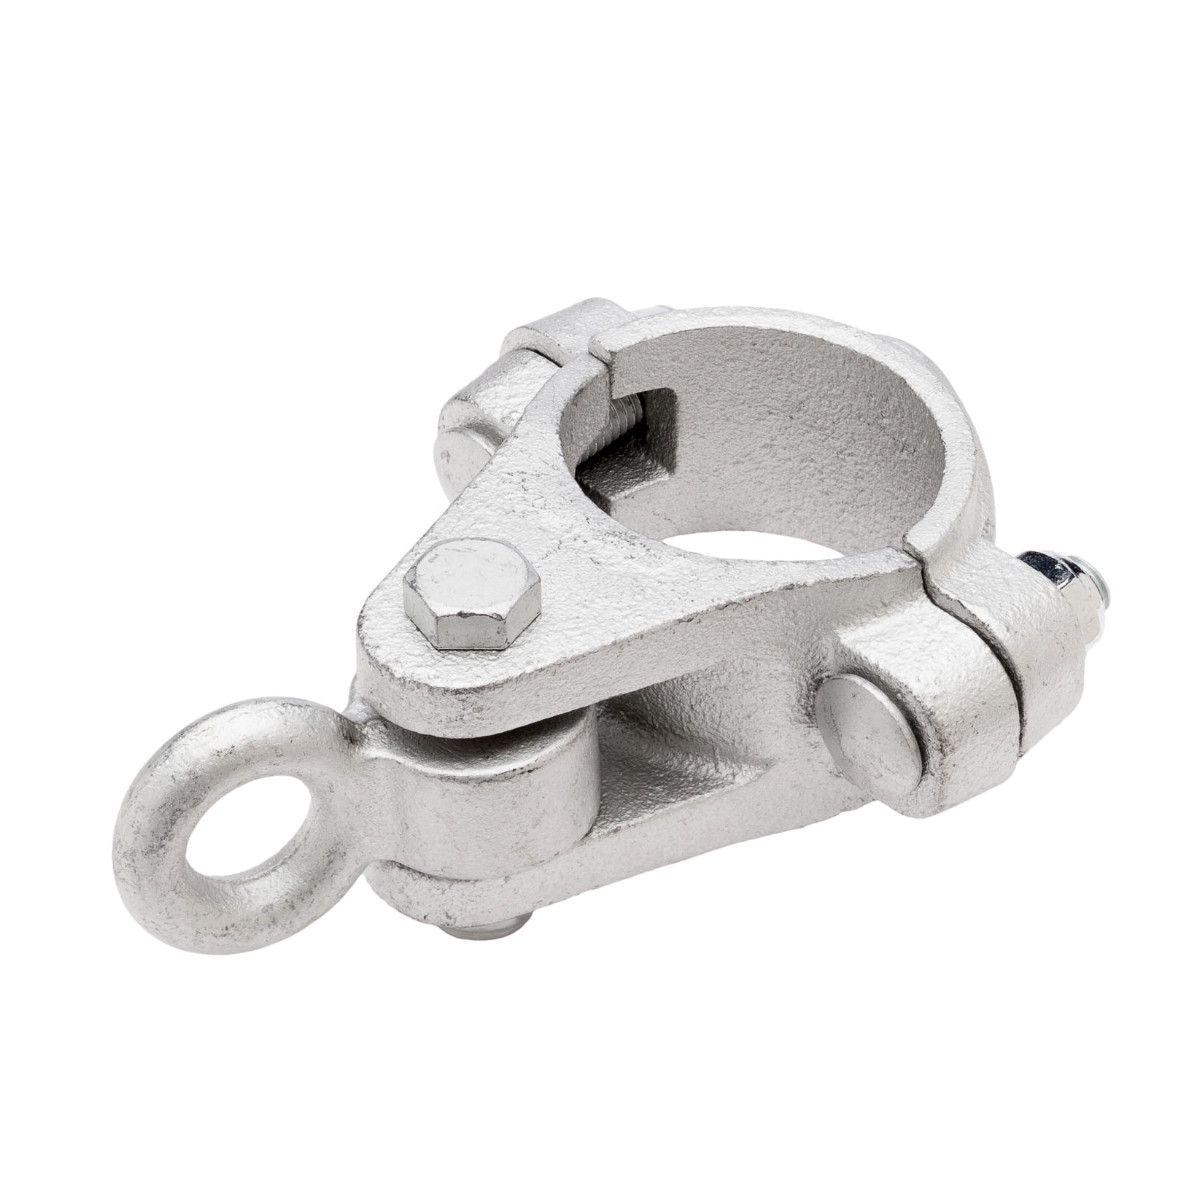 Galvanized Ductile Iron Pipe Beam Swing Hanger with Loop - SH-09